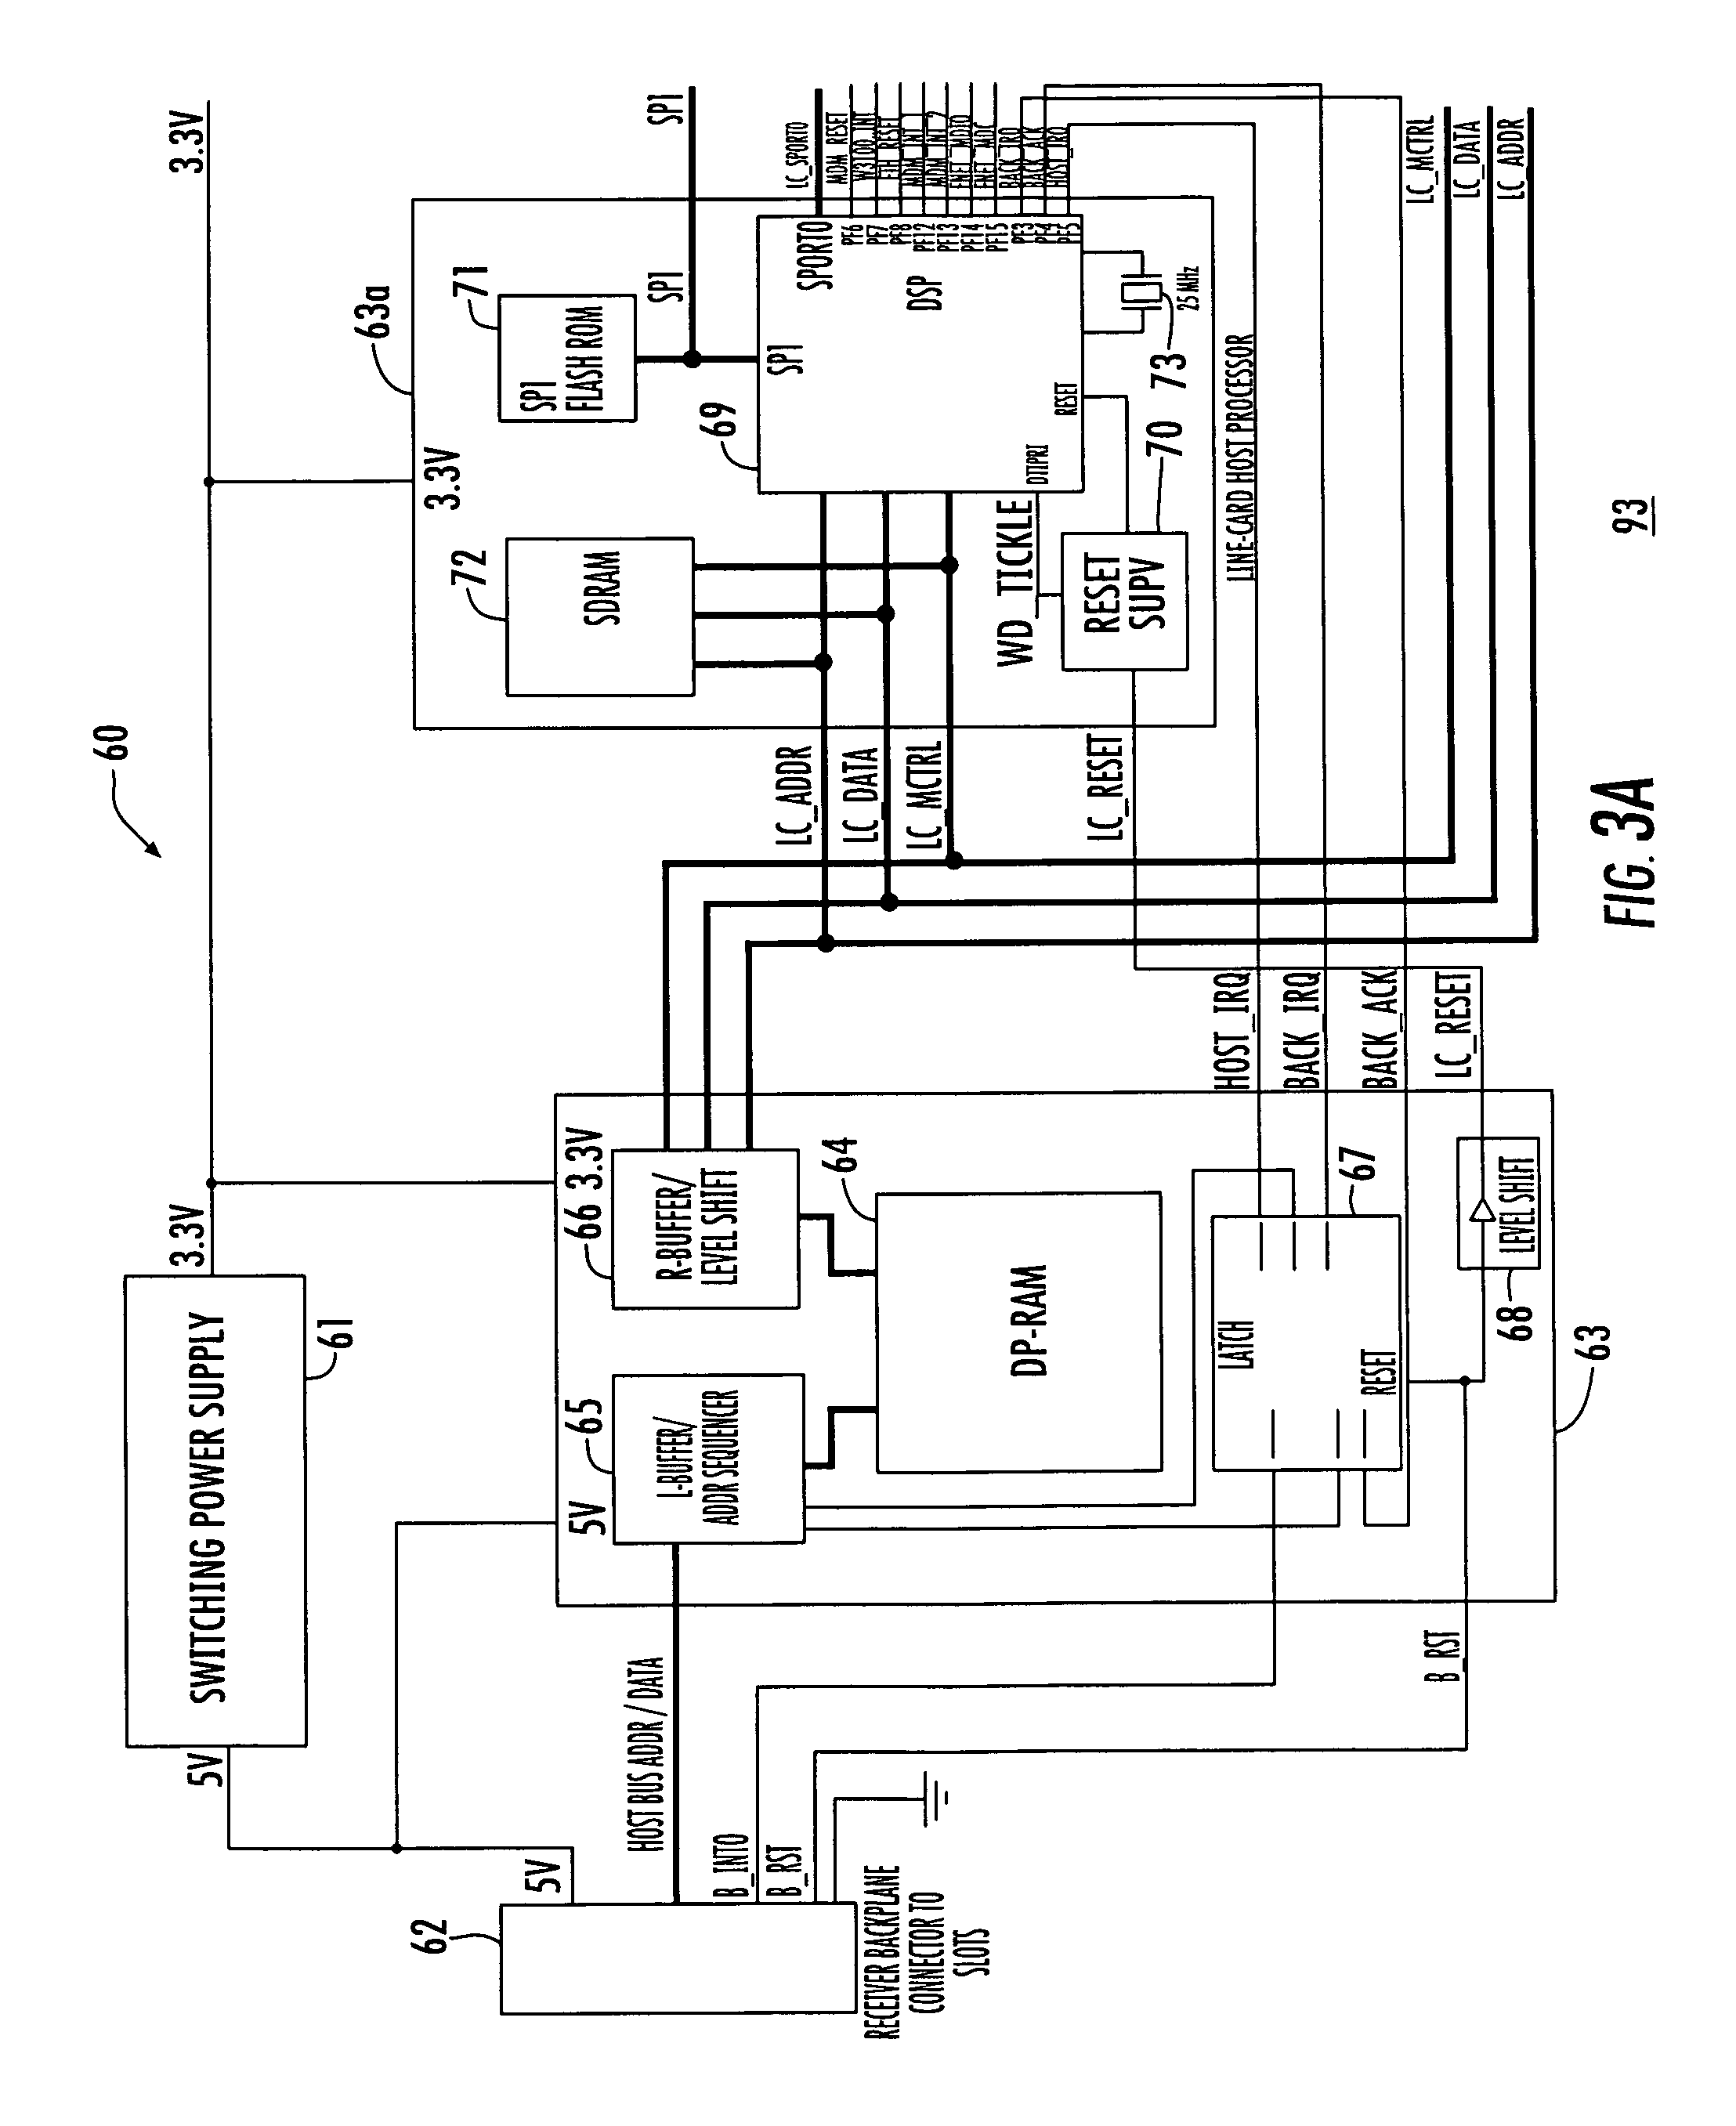 US08531286 20130910 D00004 patent us8531286 system and method for monitoring security at a sonitrol alarm wiring diagram at bakdesigns.co